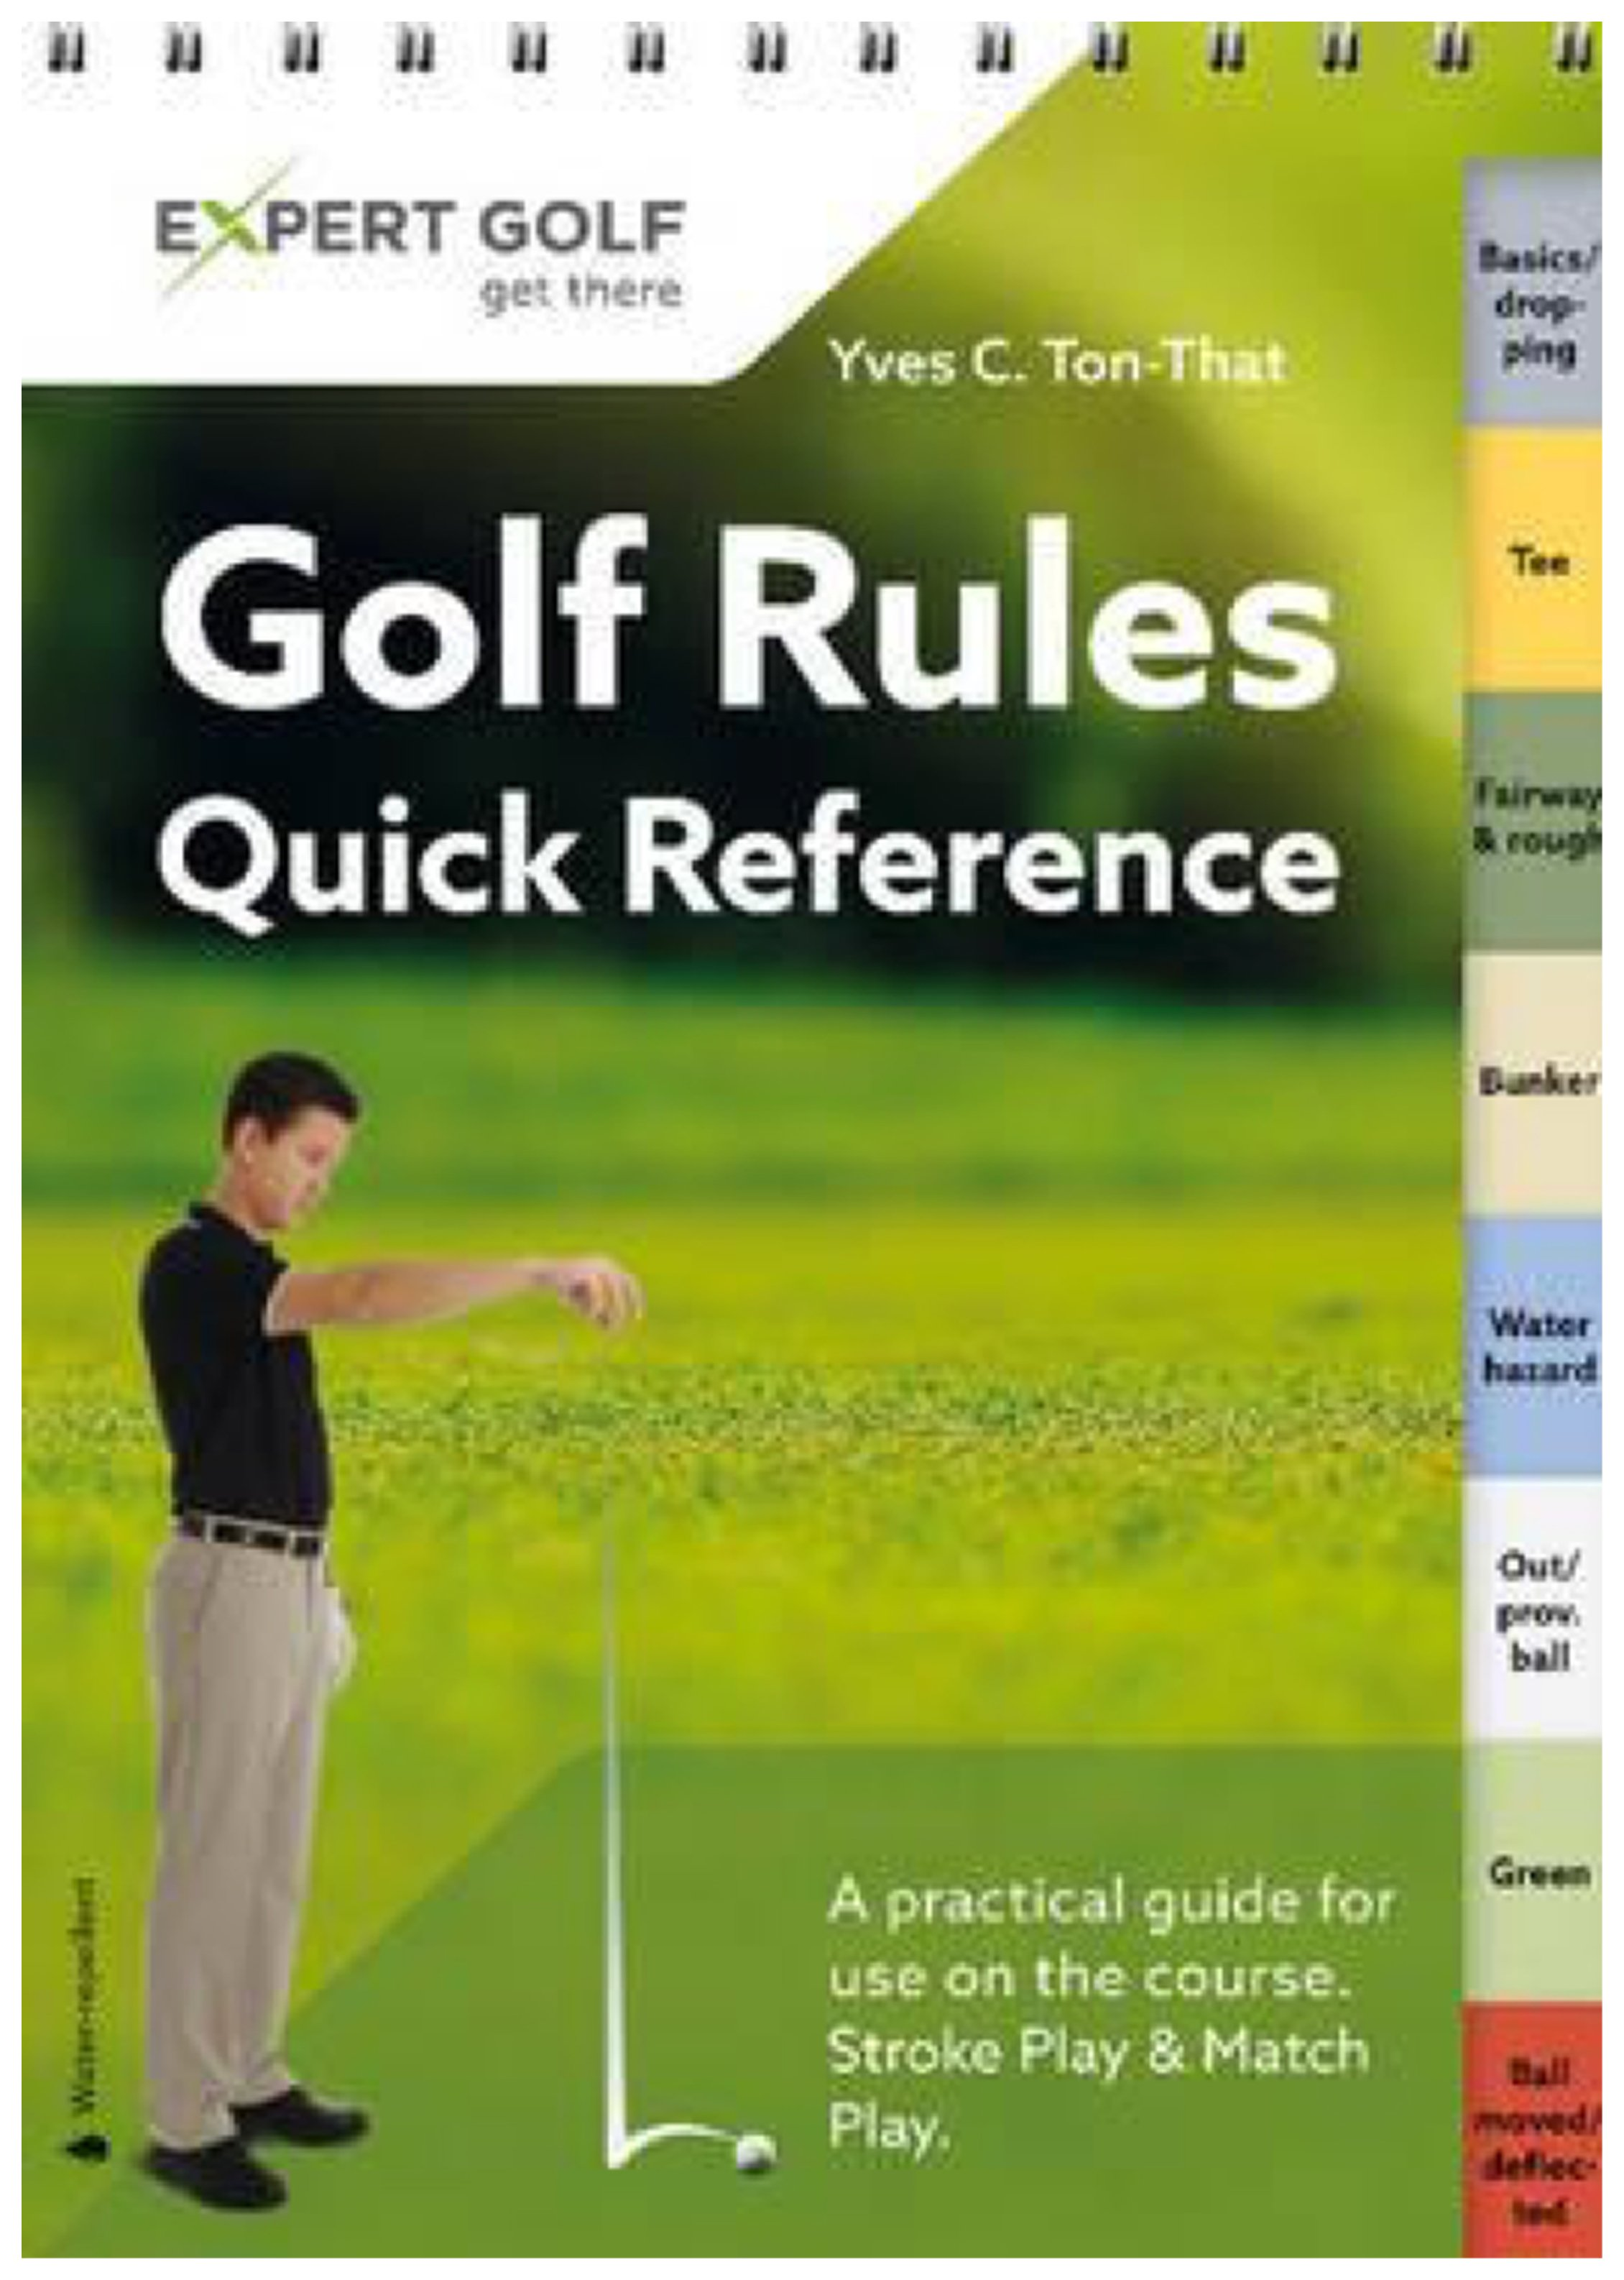 Golf Rules Multi Award Winning Book